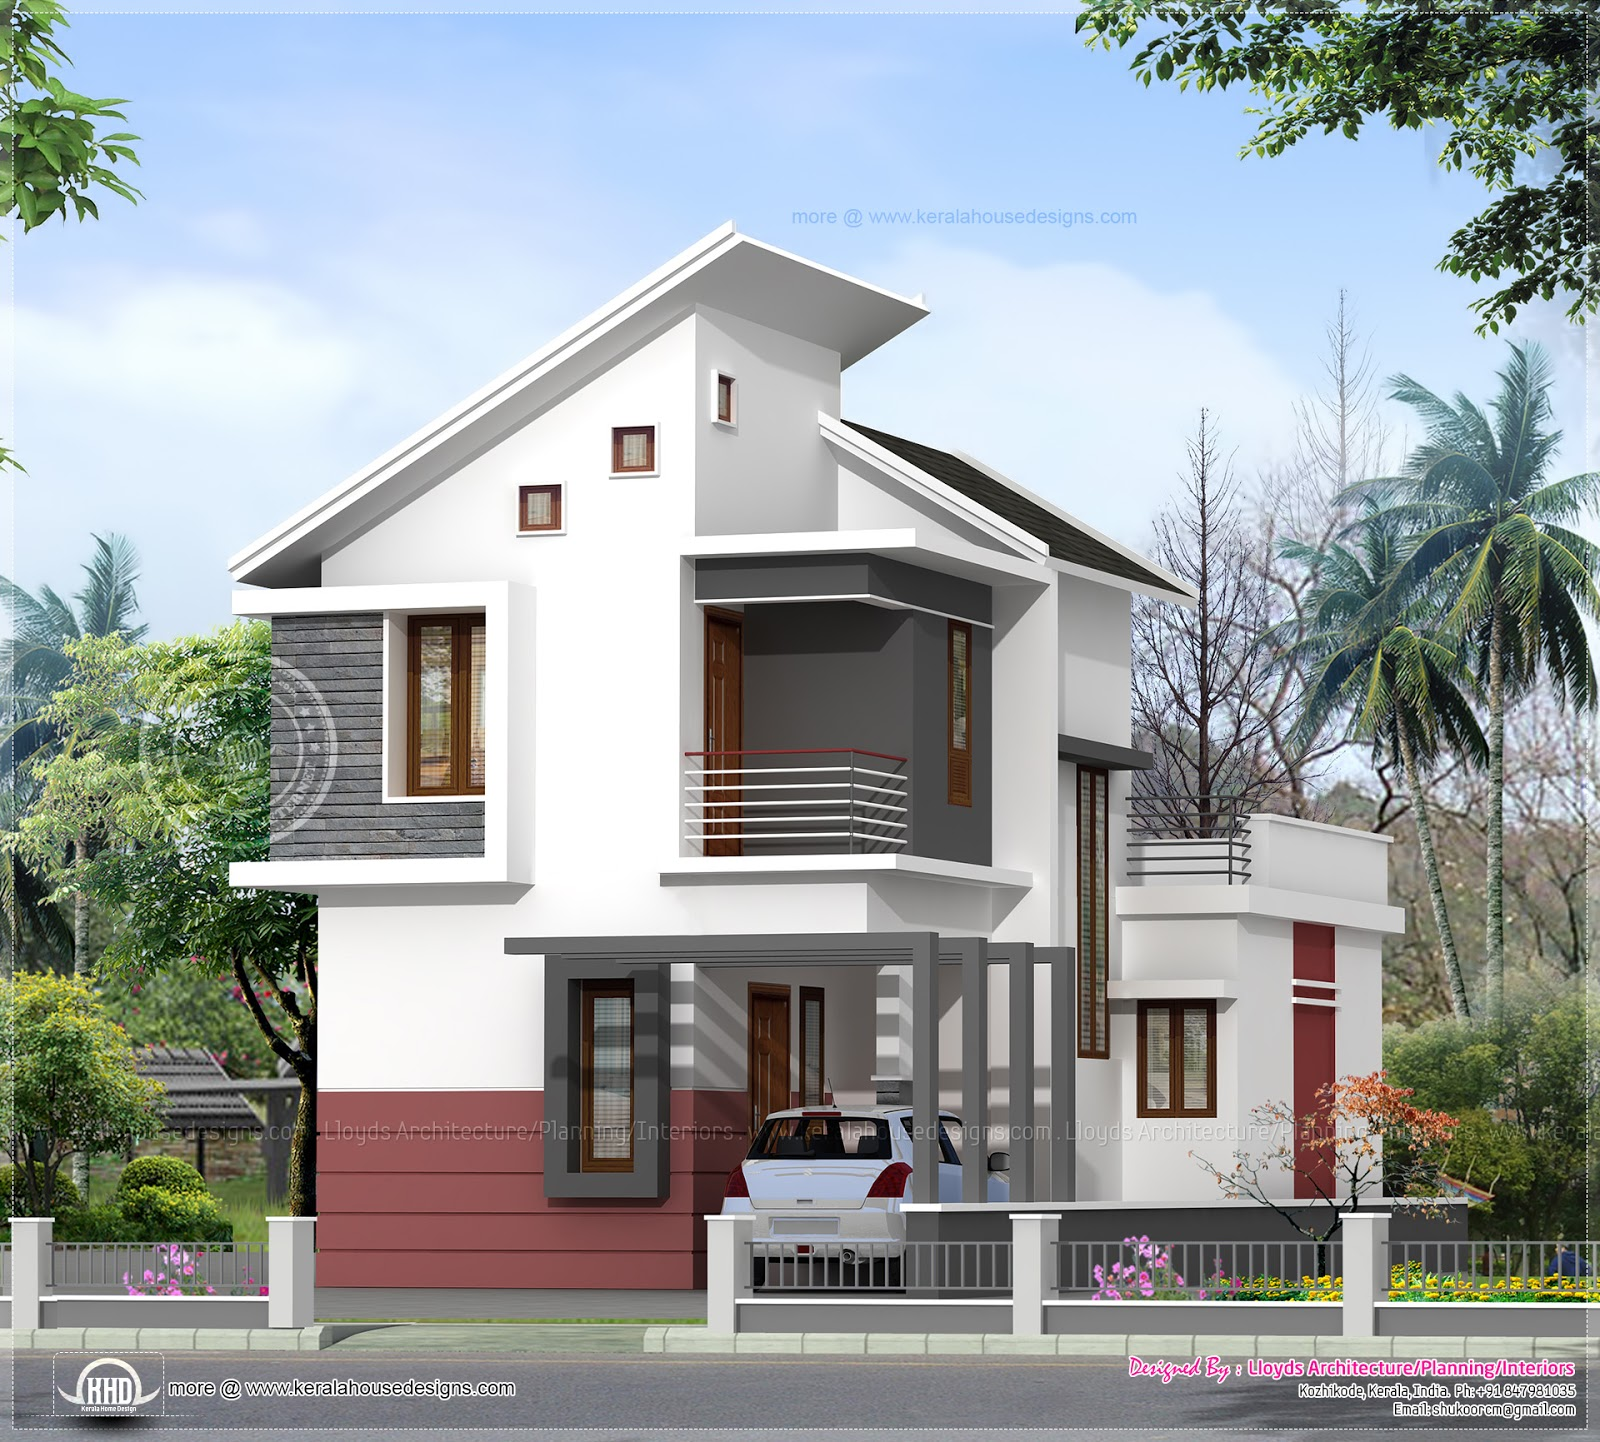 Small House Zen Design moreover Multi family house plans moreover Living Homes Prefab likewise 30085 moreover Philippine Farm House Design. on economical duplex plans